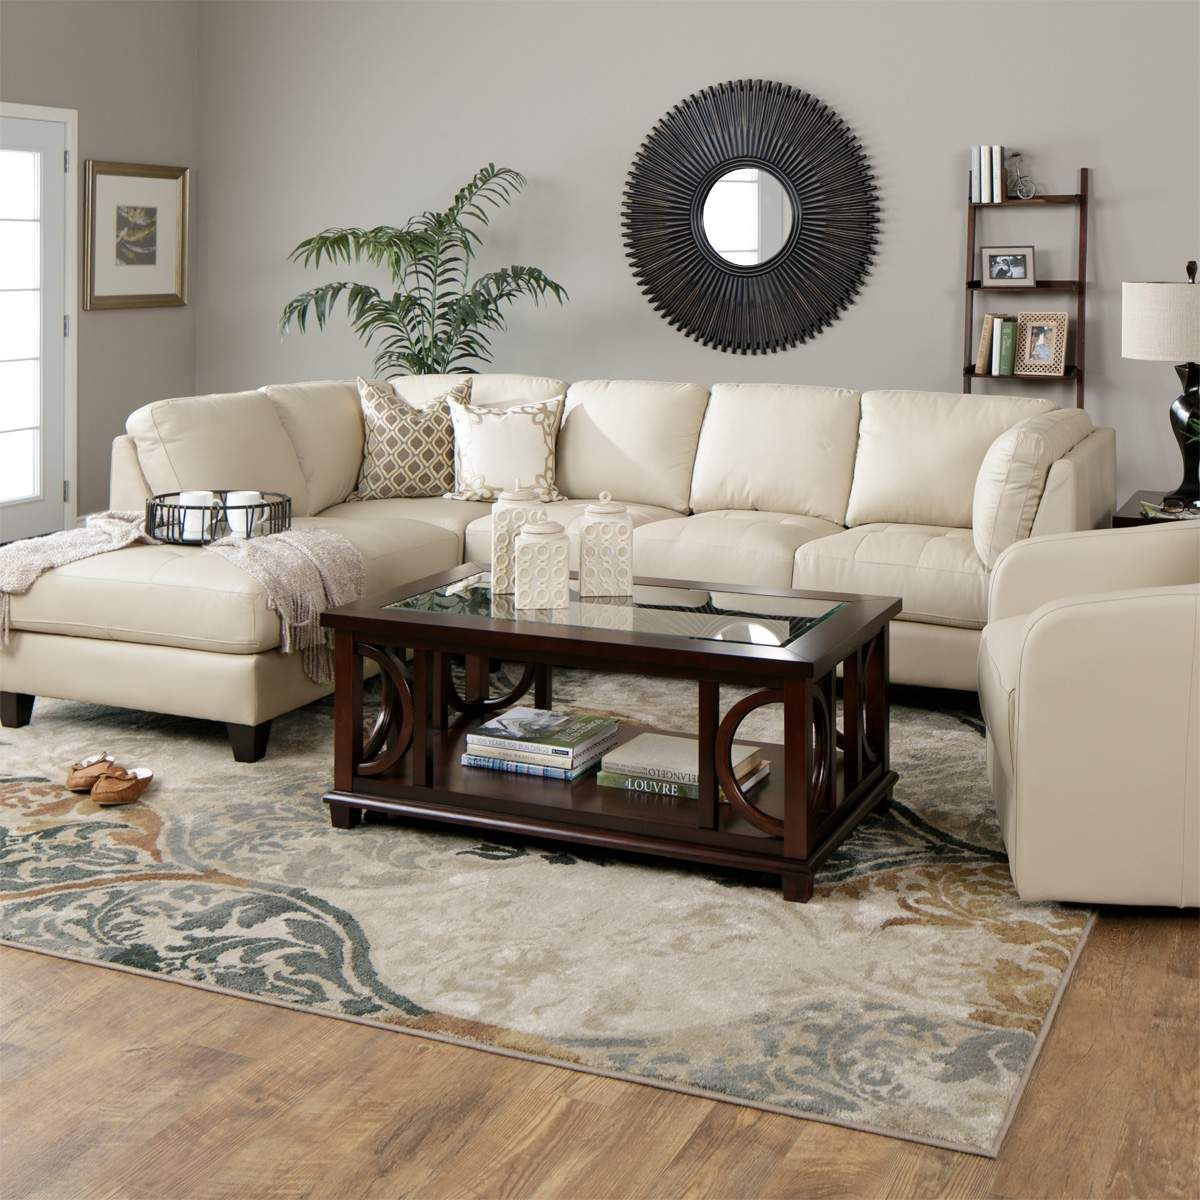 Sleek And Spacious The Devon Taupe Leather Sectional Has Plenty Of Room Leather Couches Living Room Leather Sectional Living Room Small Living Room Furniture